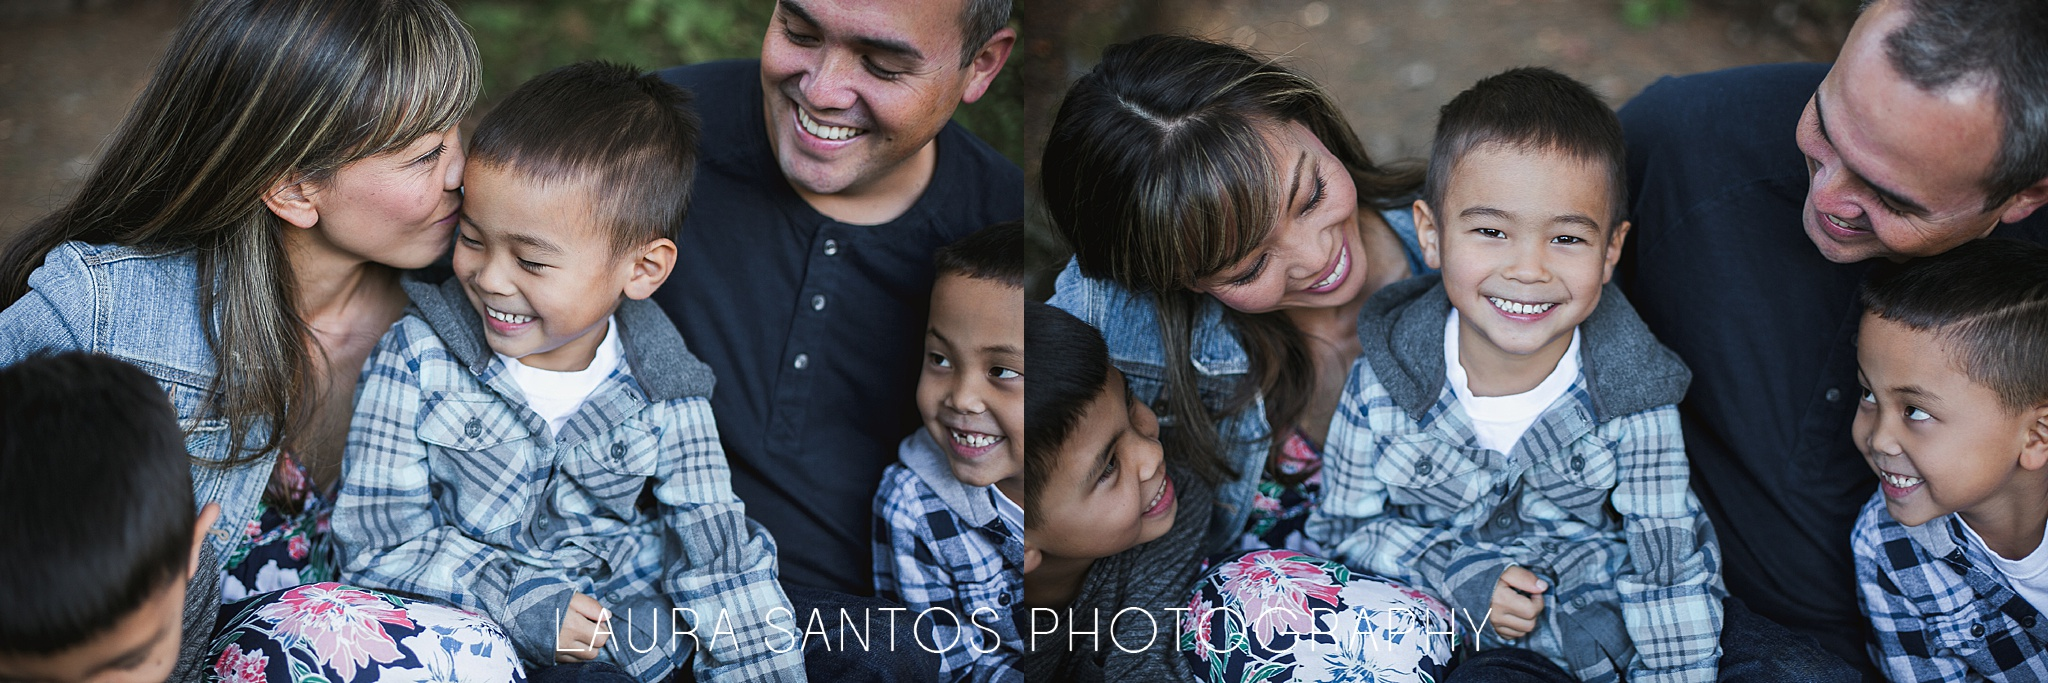 Laura Santos Photography Portland Oregon Family Photographer_0743.jpg